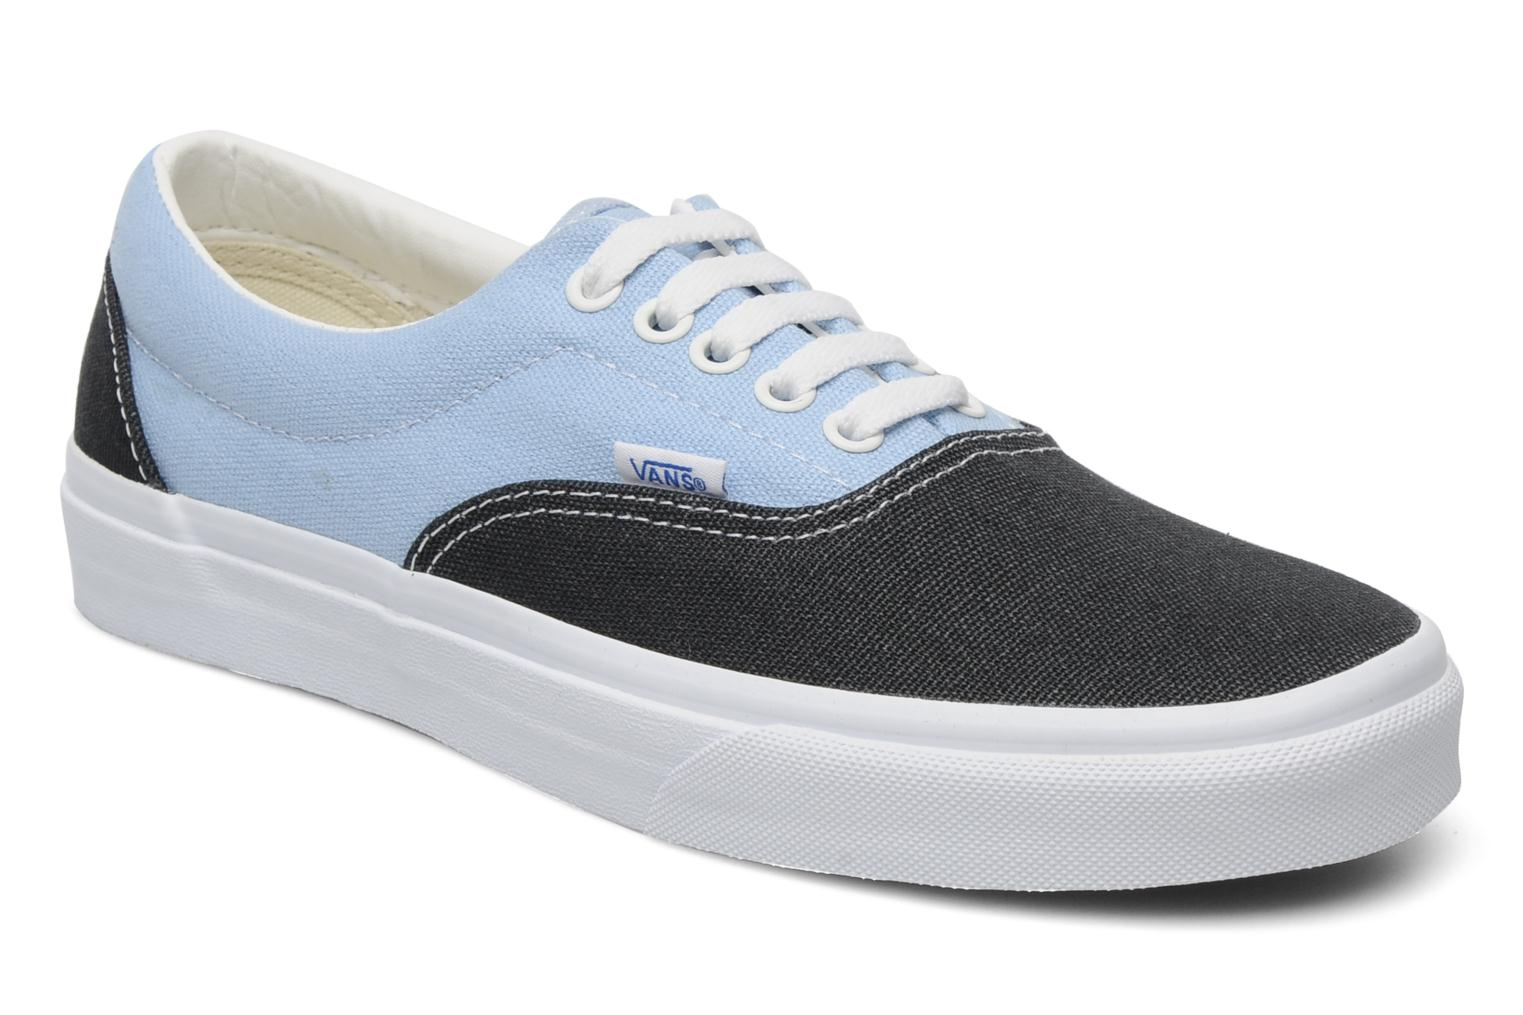 (2-Tone Check) Imperial Blue/True White Vans Era (Bleu)